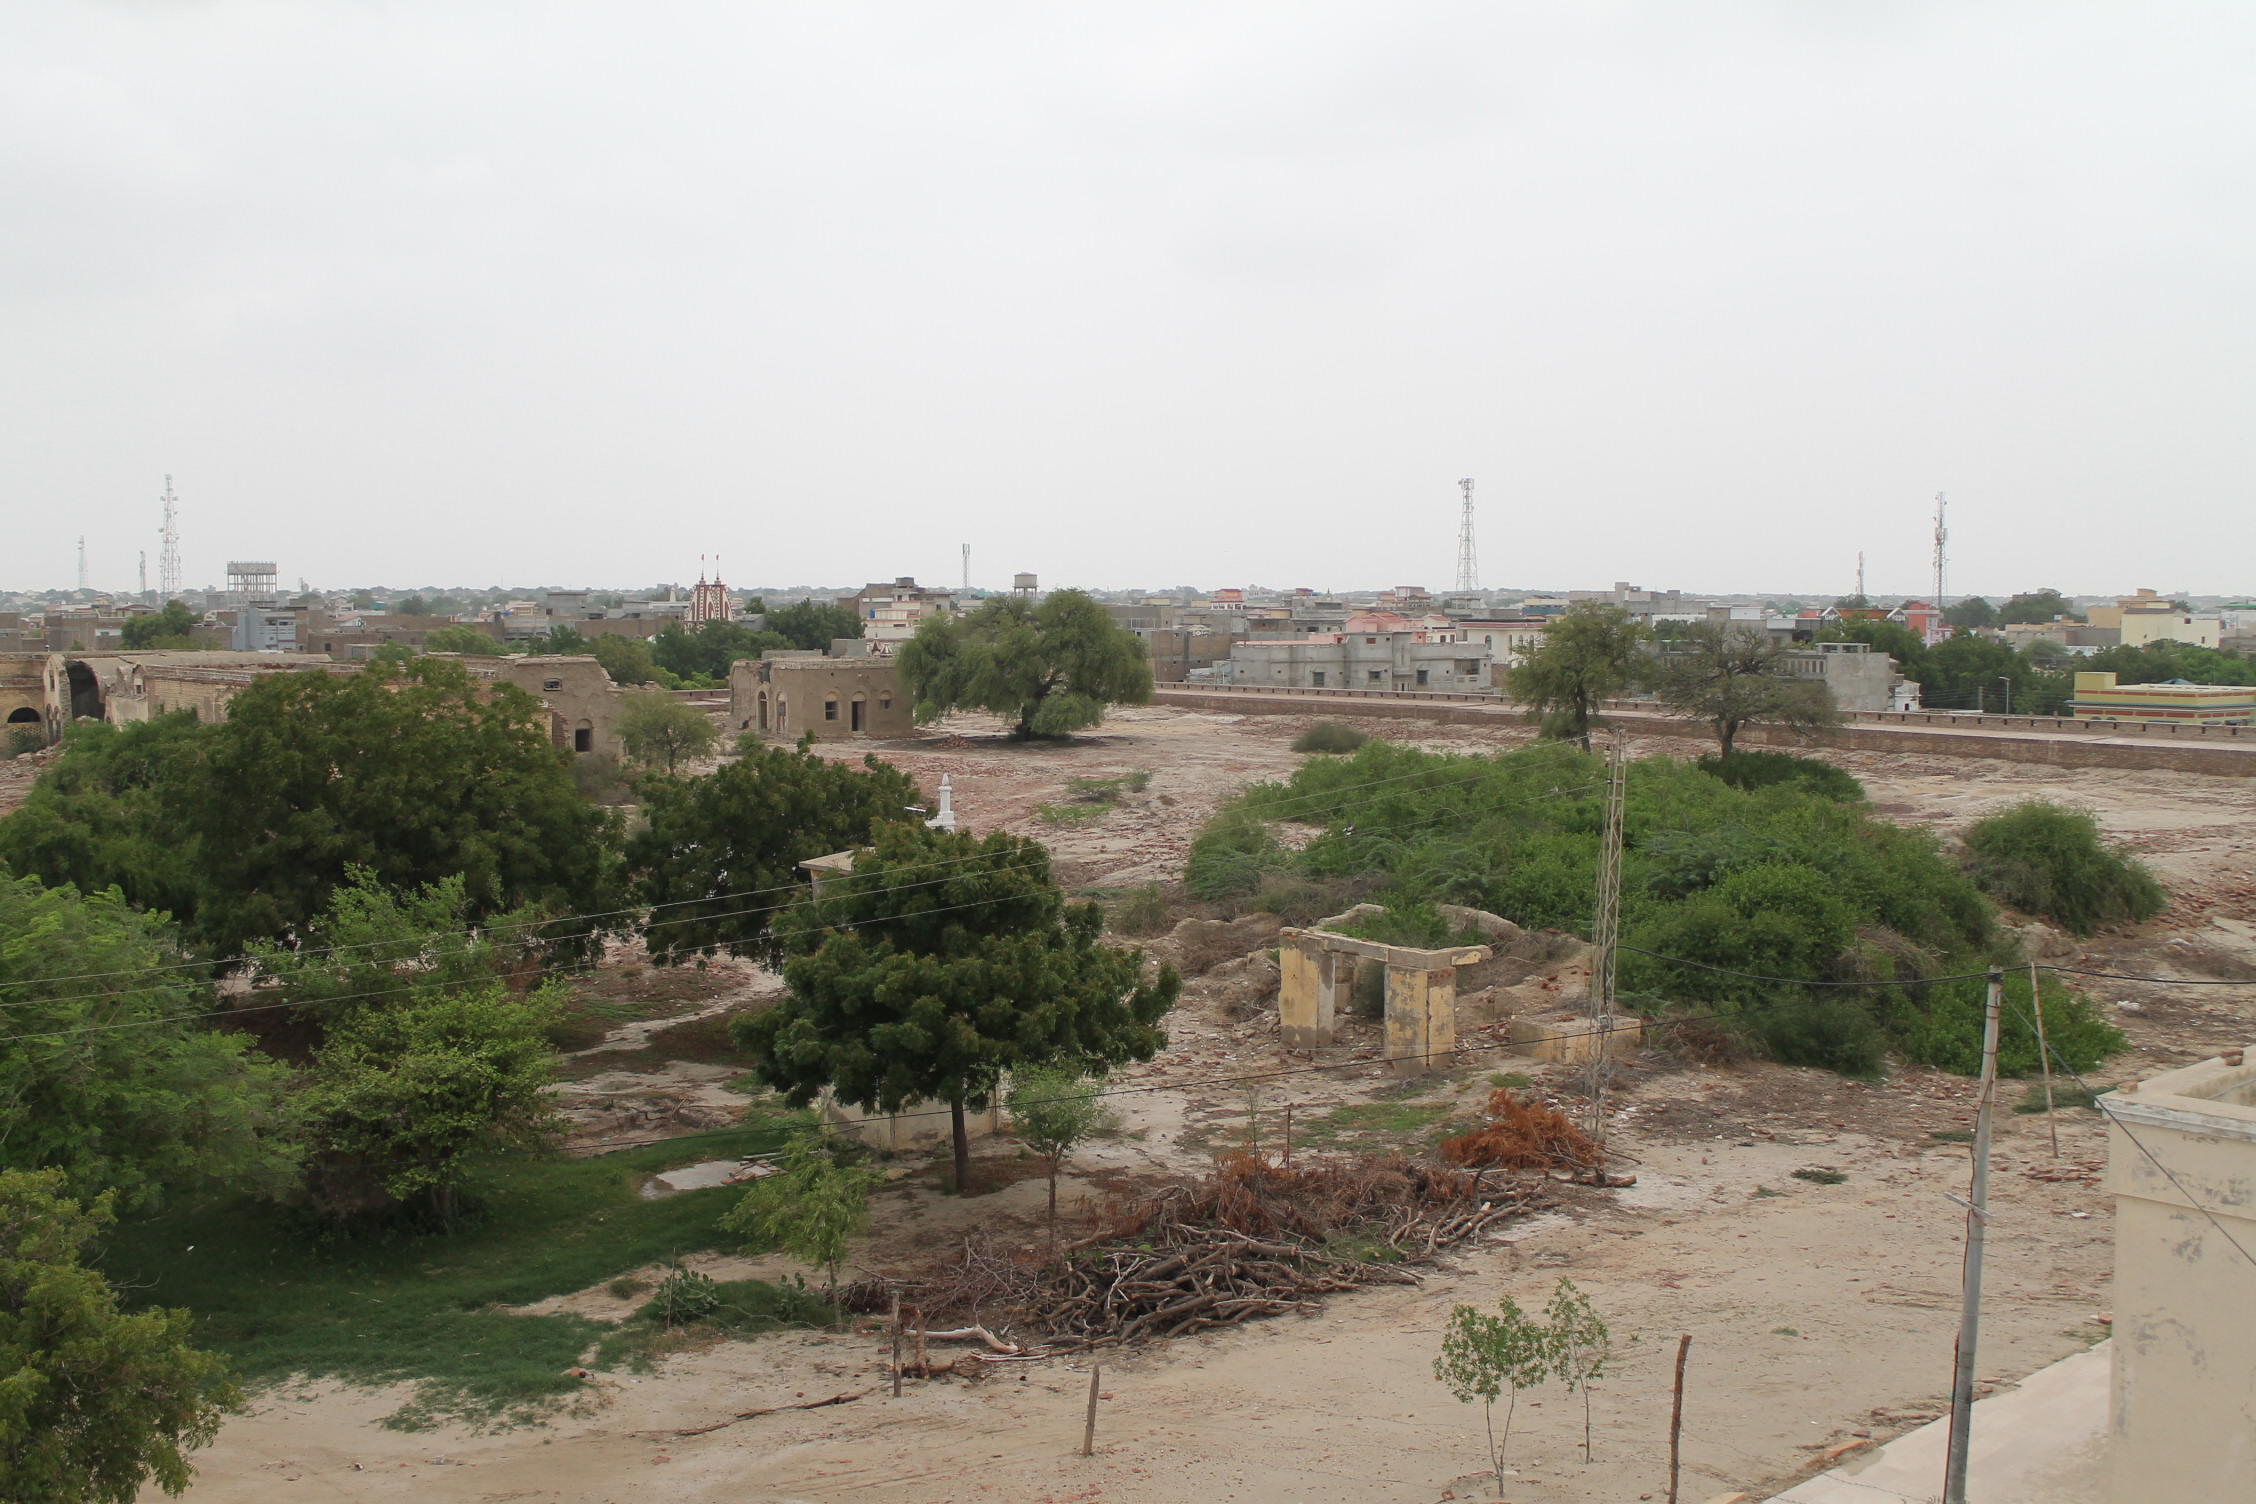 View of Umerkot from the top of Umerkot Fort